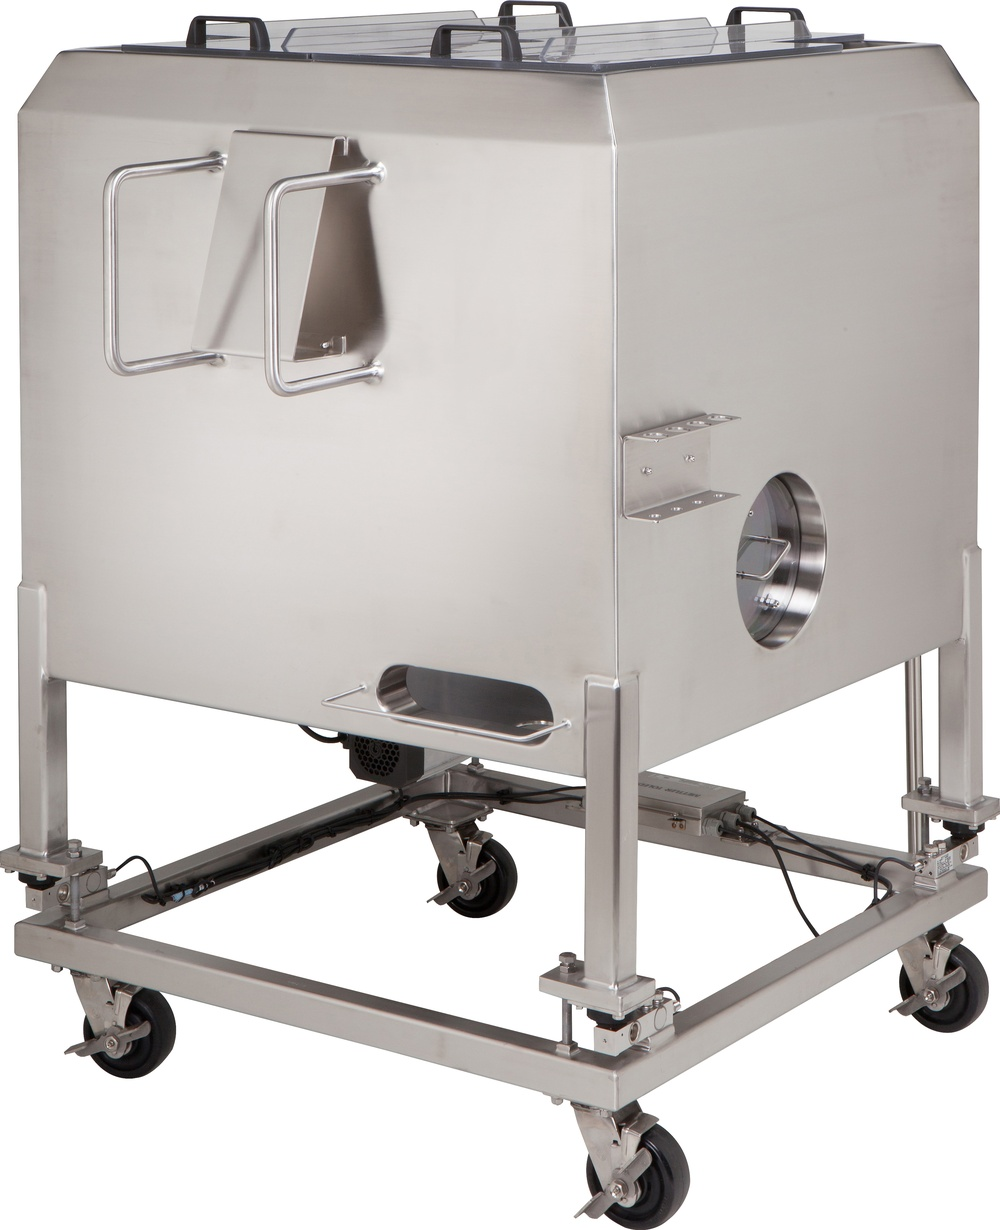 HOLLOWAY proudly produces pharmaceutical stainless steel solutions like this single use mixer.